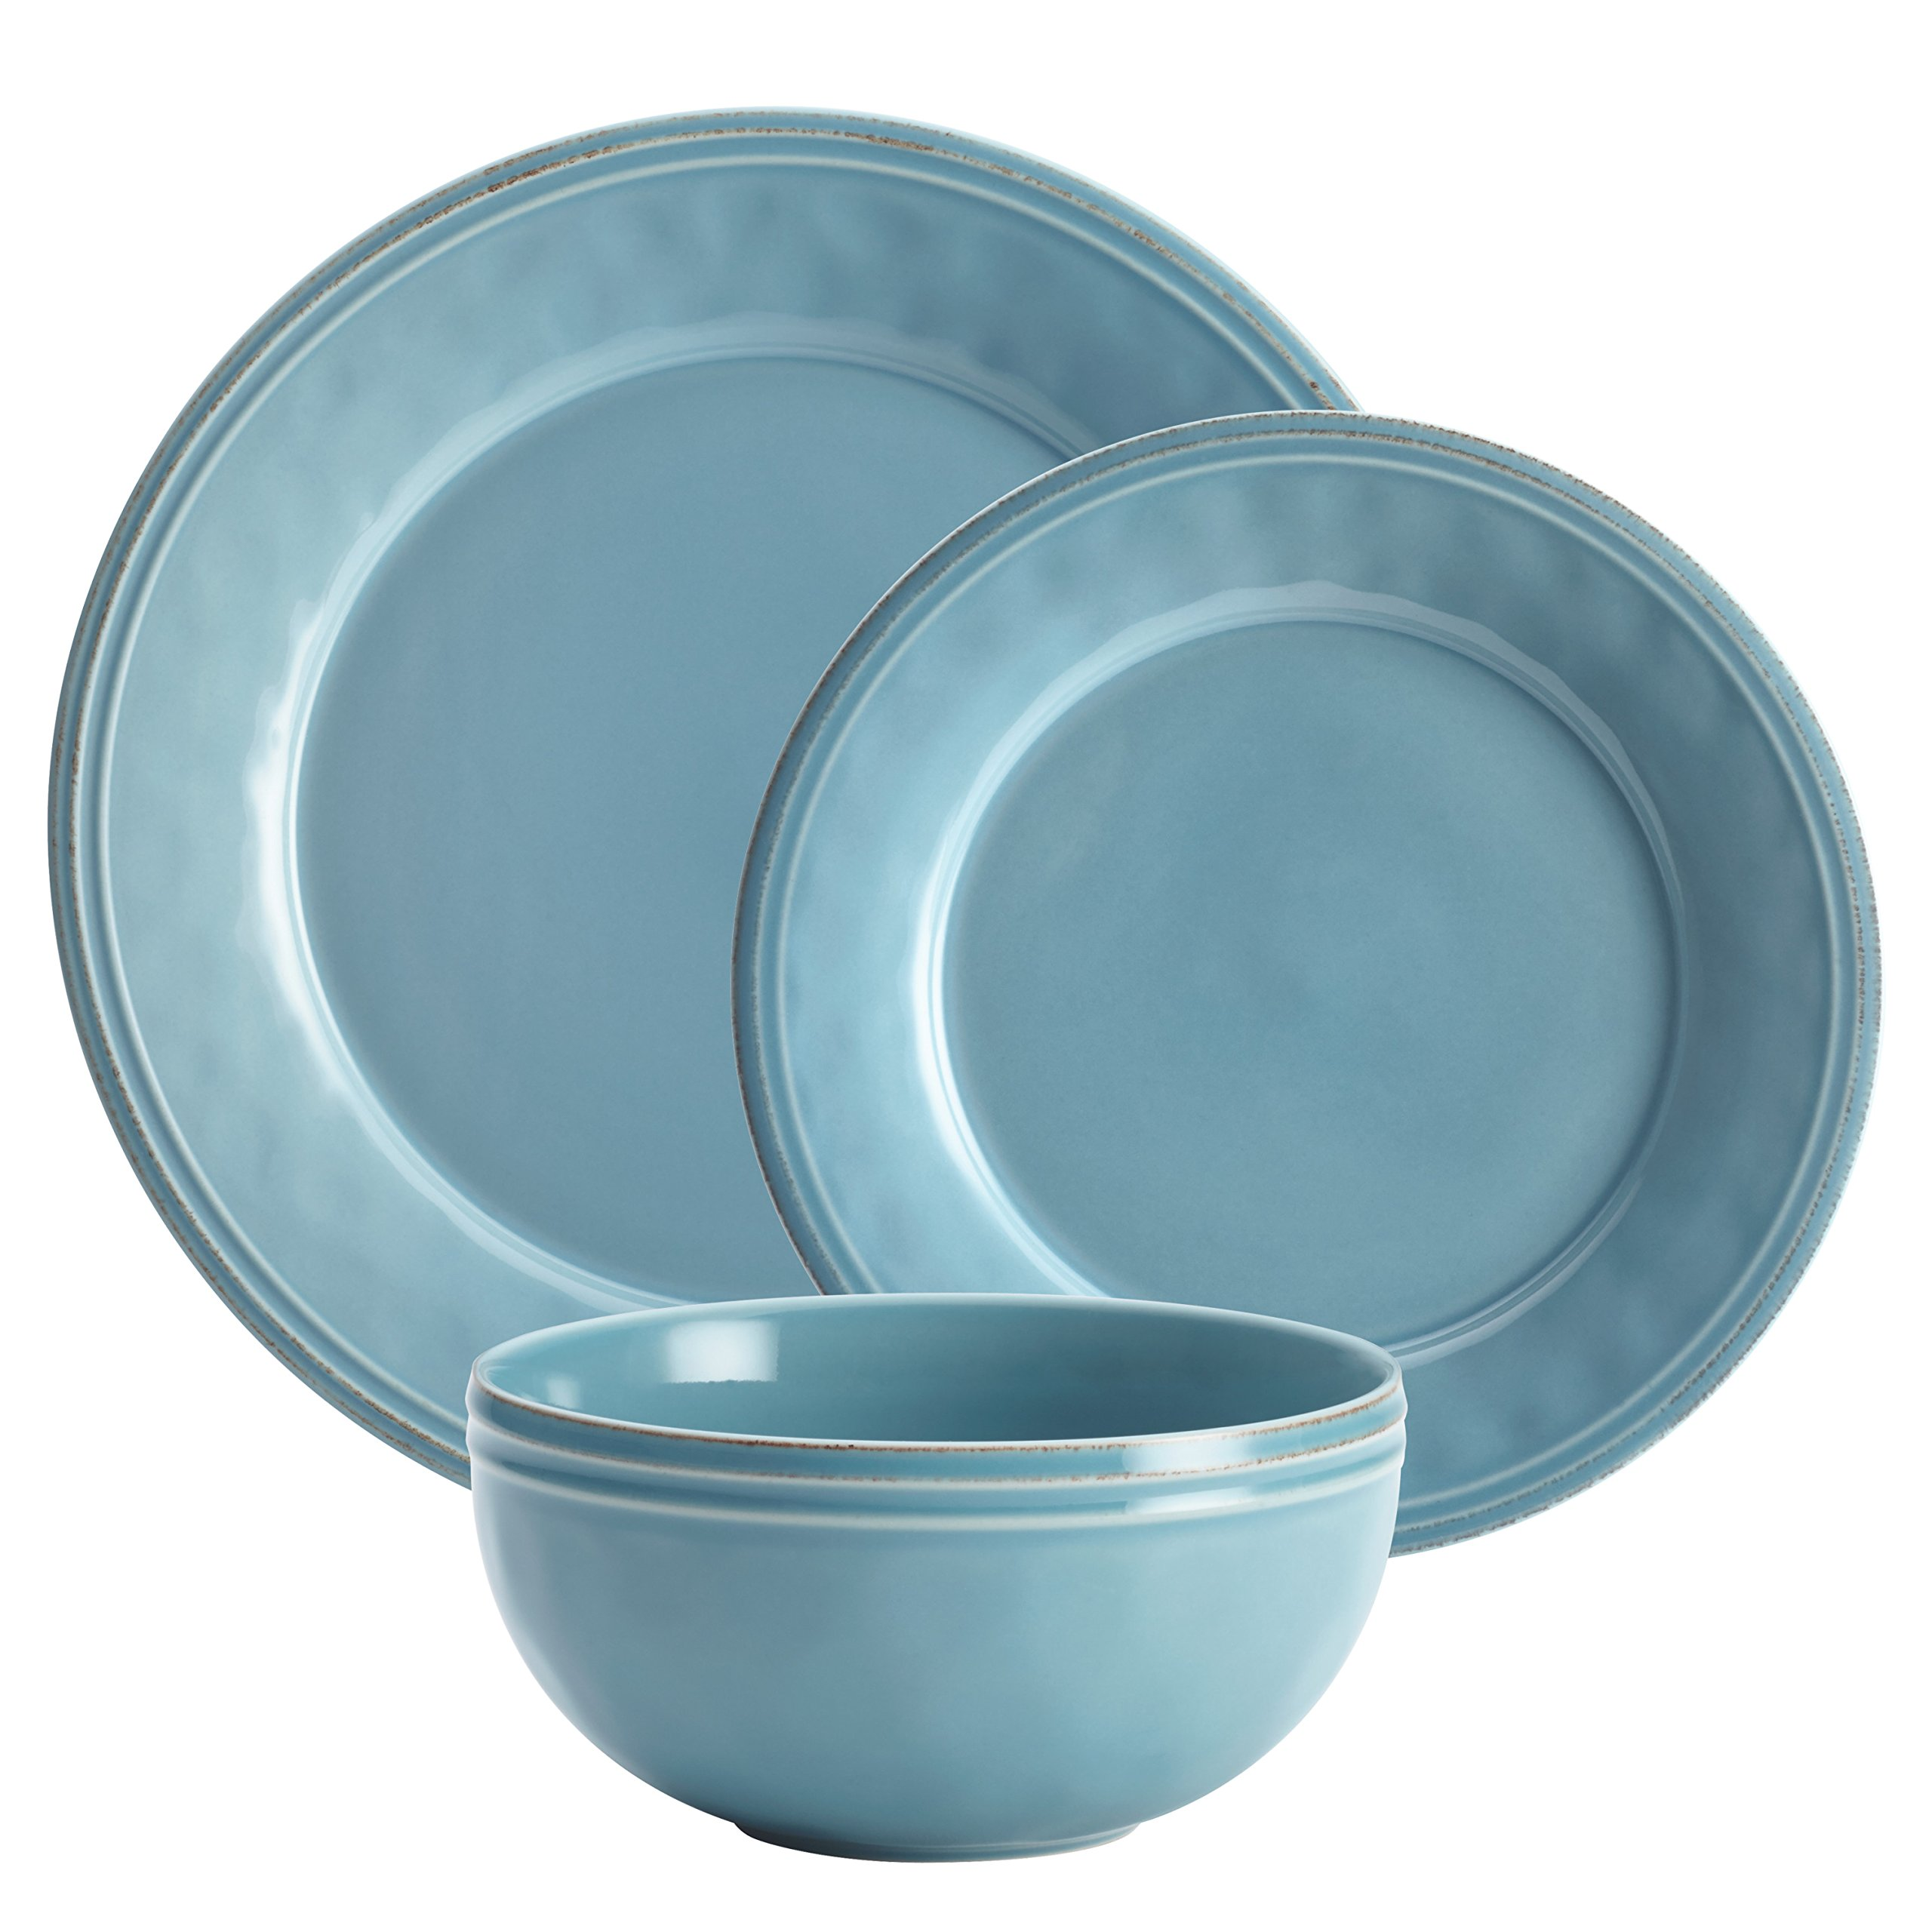 Rachael Ray Cucina Dinnerware 16-Piece Stoneware Dinnerware Set, Agave Blue by Rachael Ray (Image #11)